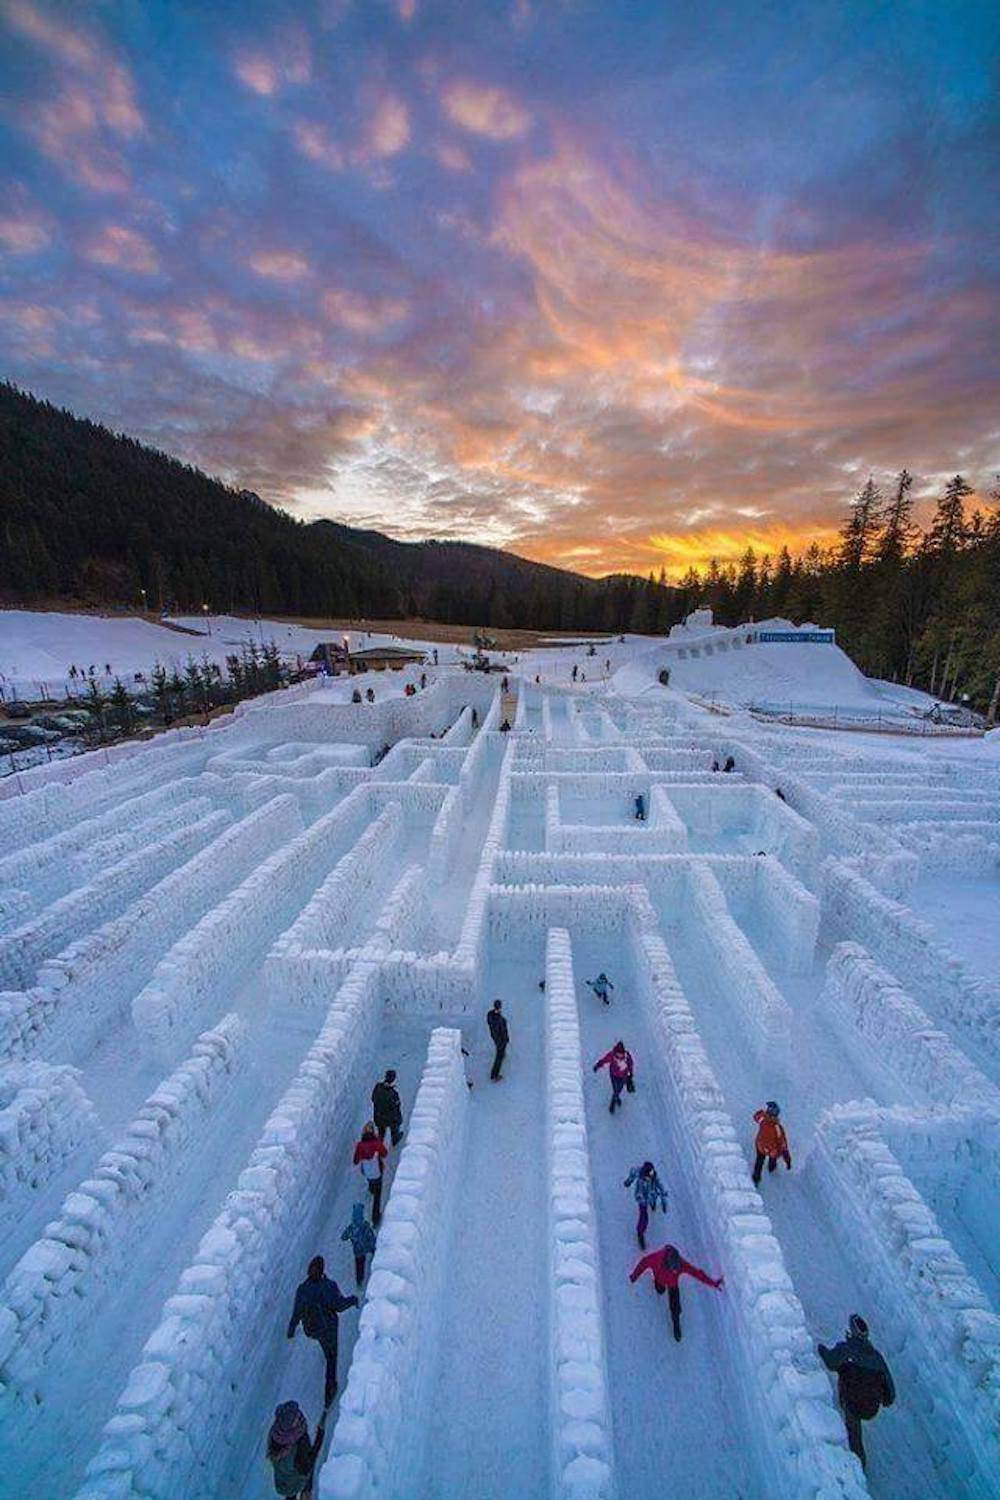 Image Of People In A Snow Maze